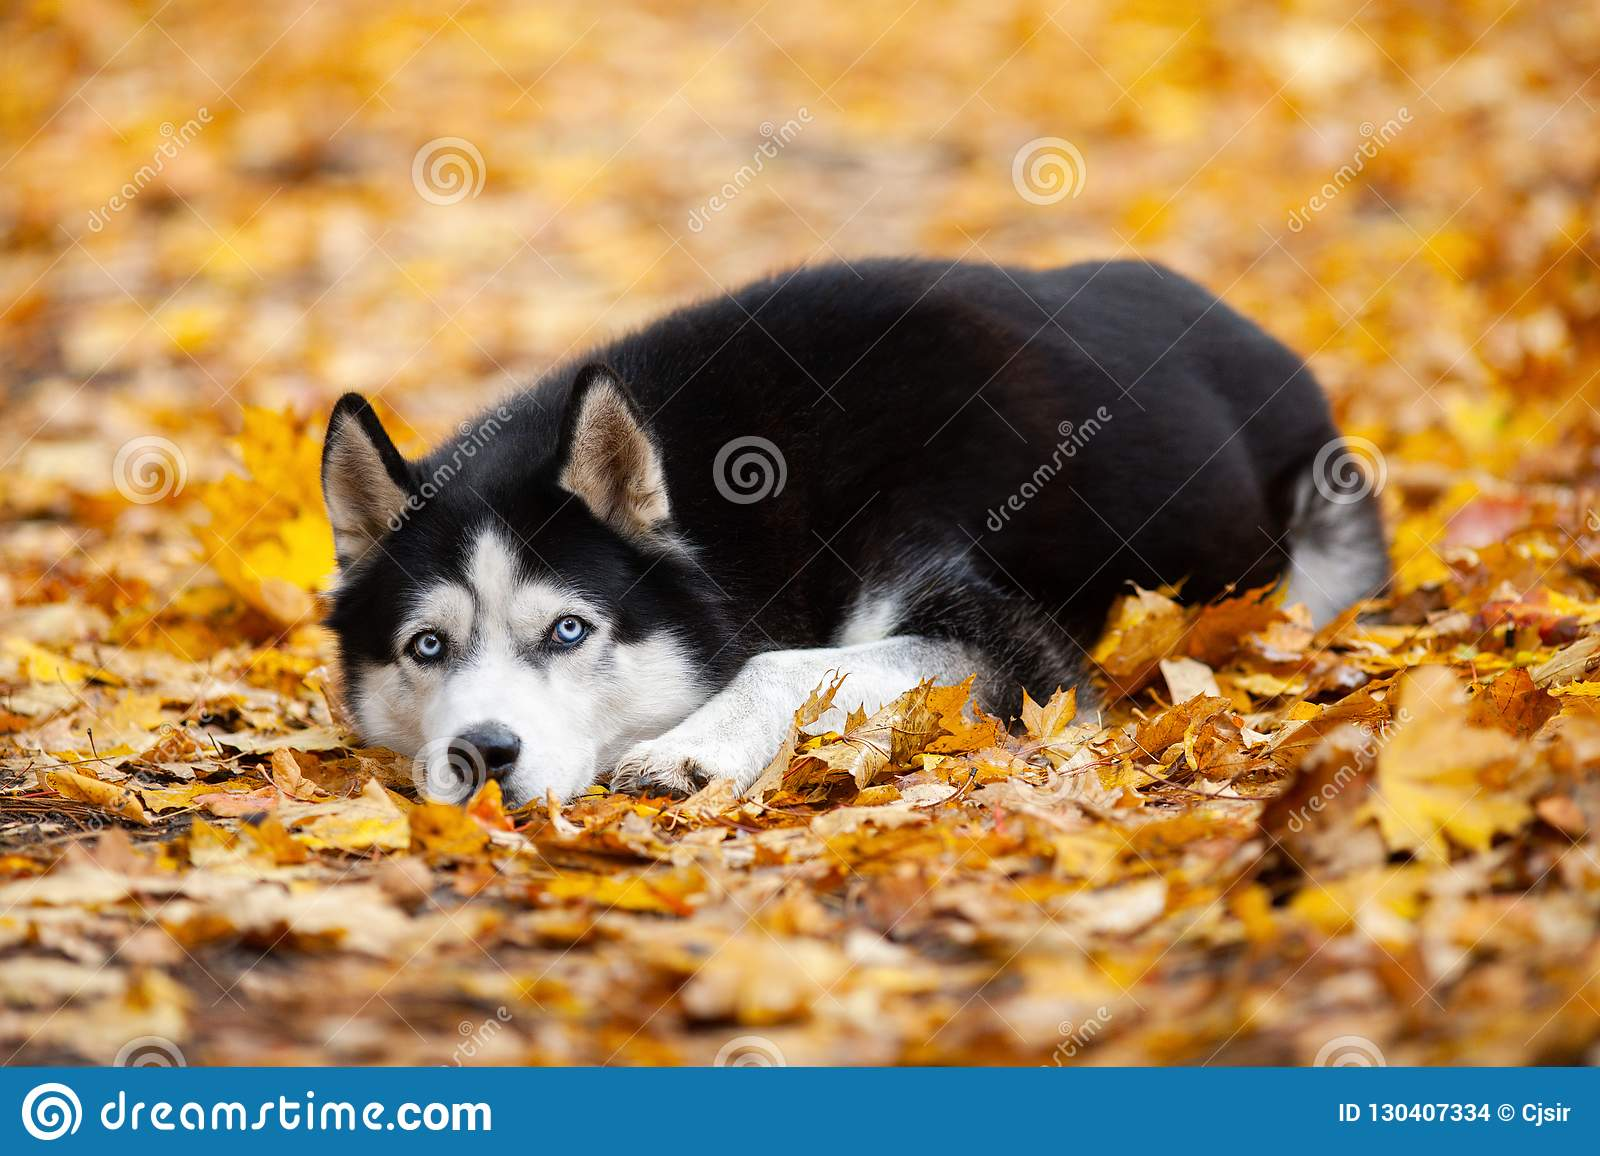 Beautiful black-and-white blue-eyed Siberian Husky lies in the yellow autumn leaves. Cheerful autumn dog.